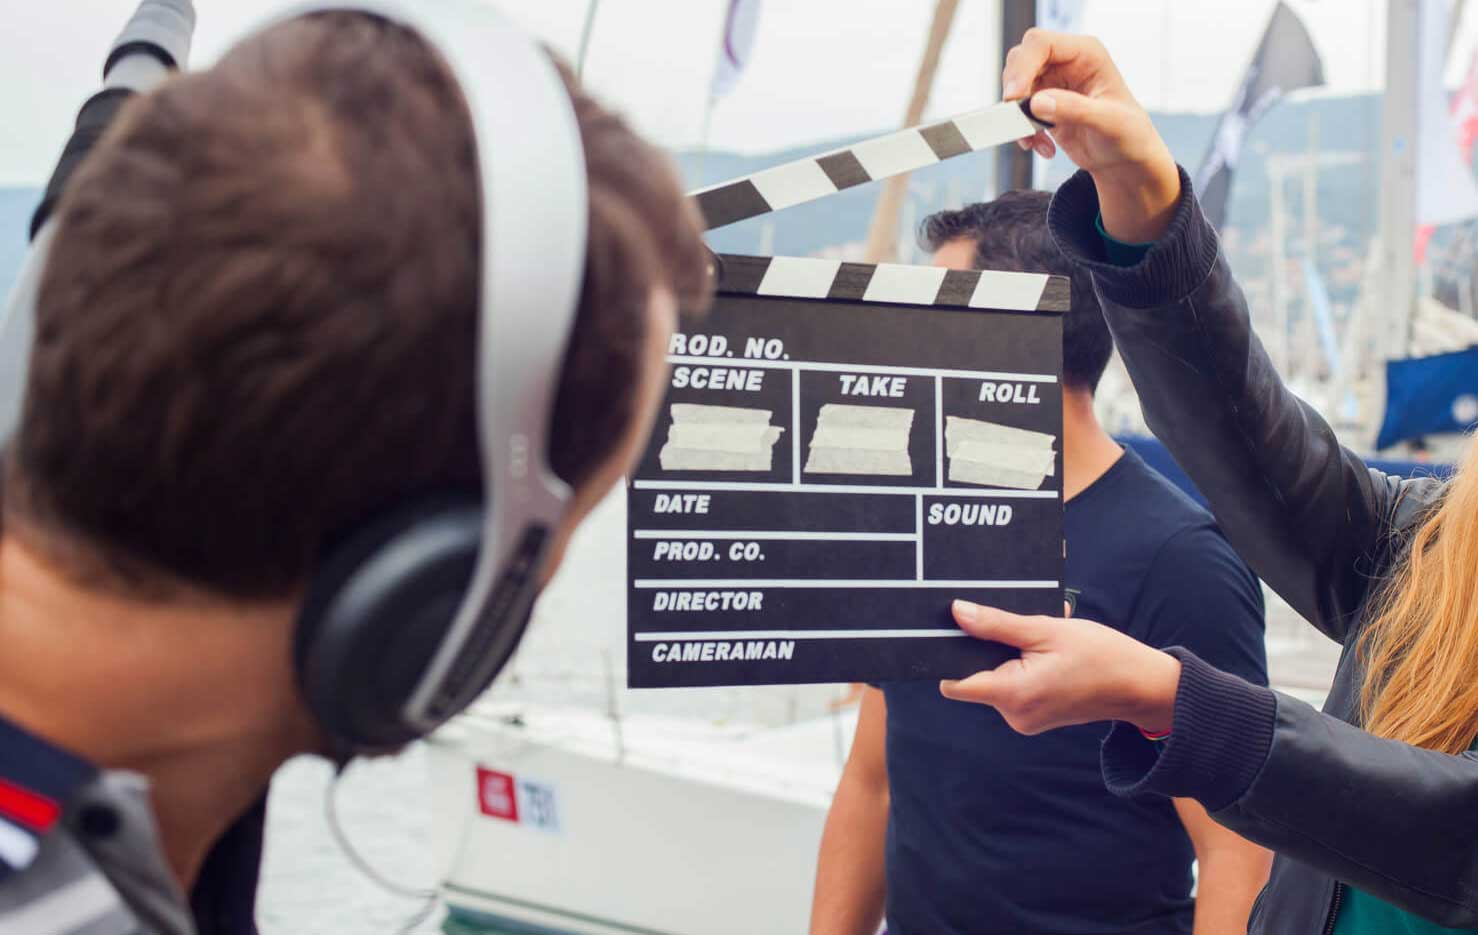 Video production - live or pre-recorded? © fotolia / bepsphoto